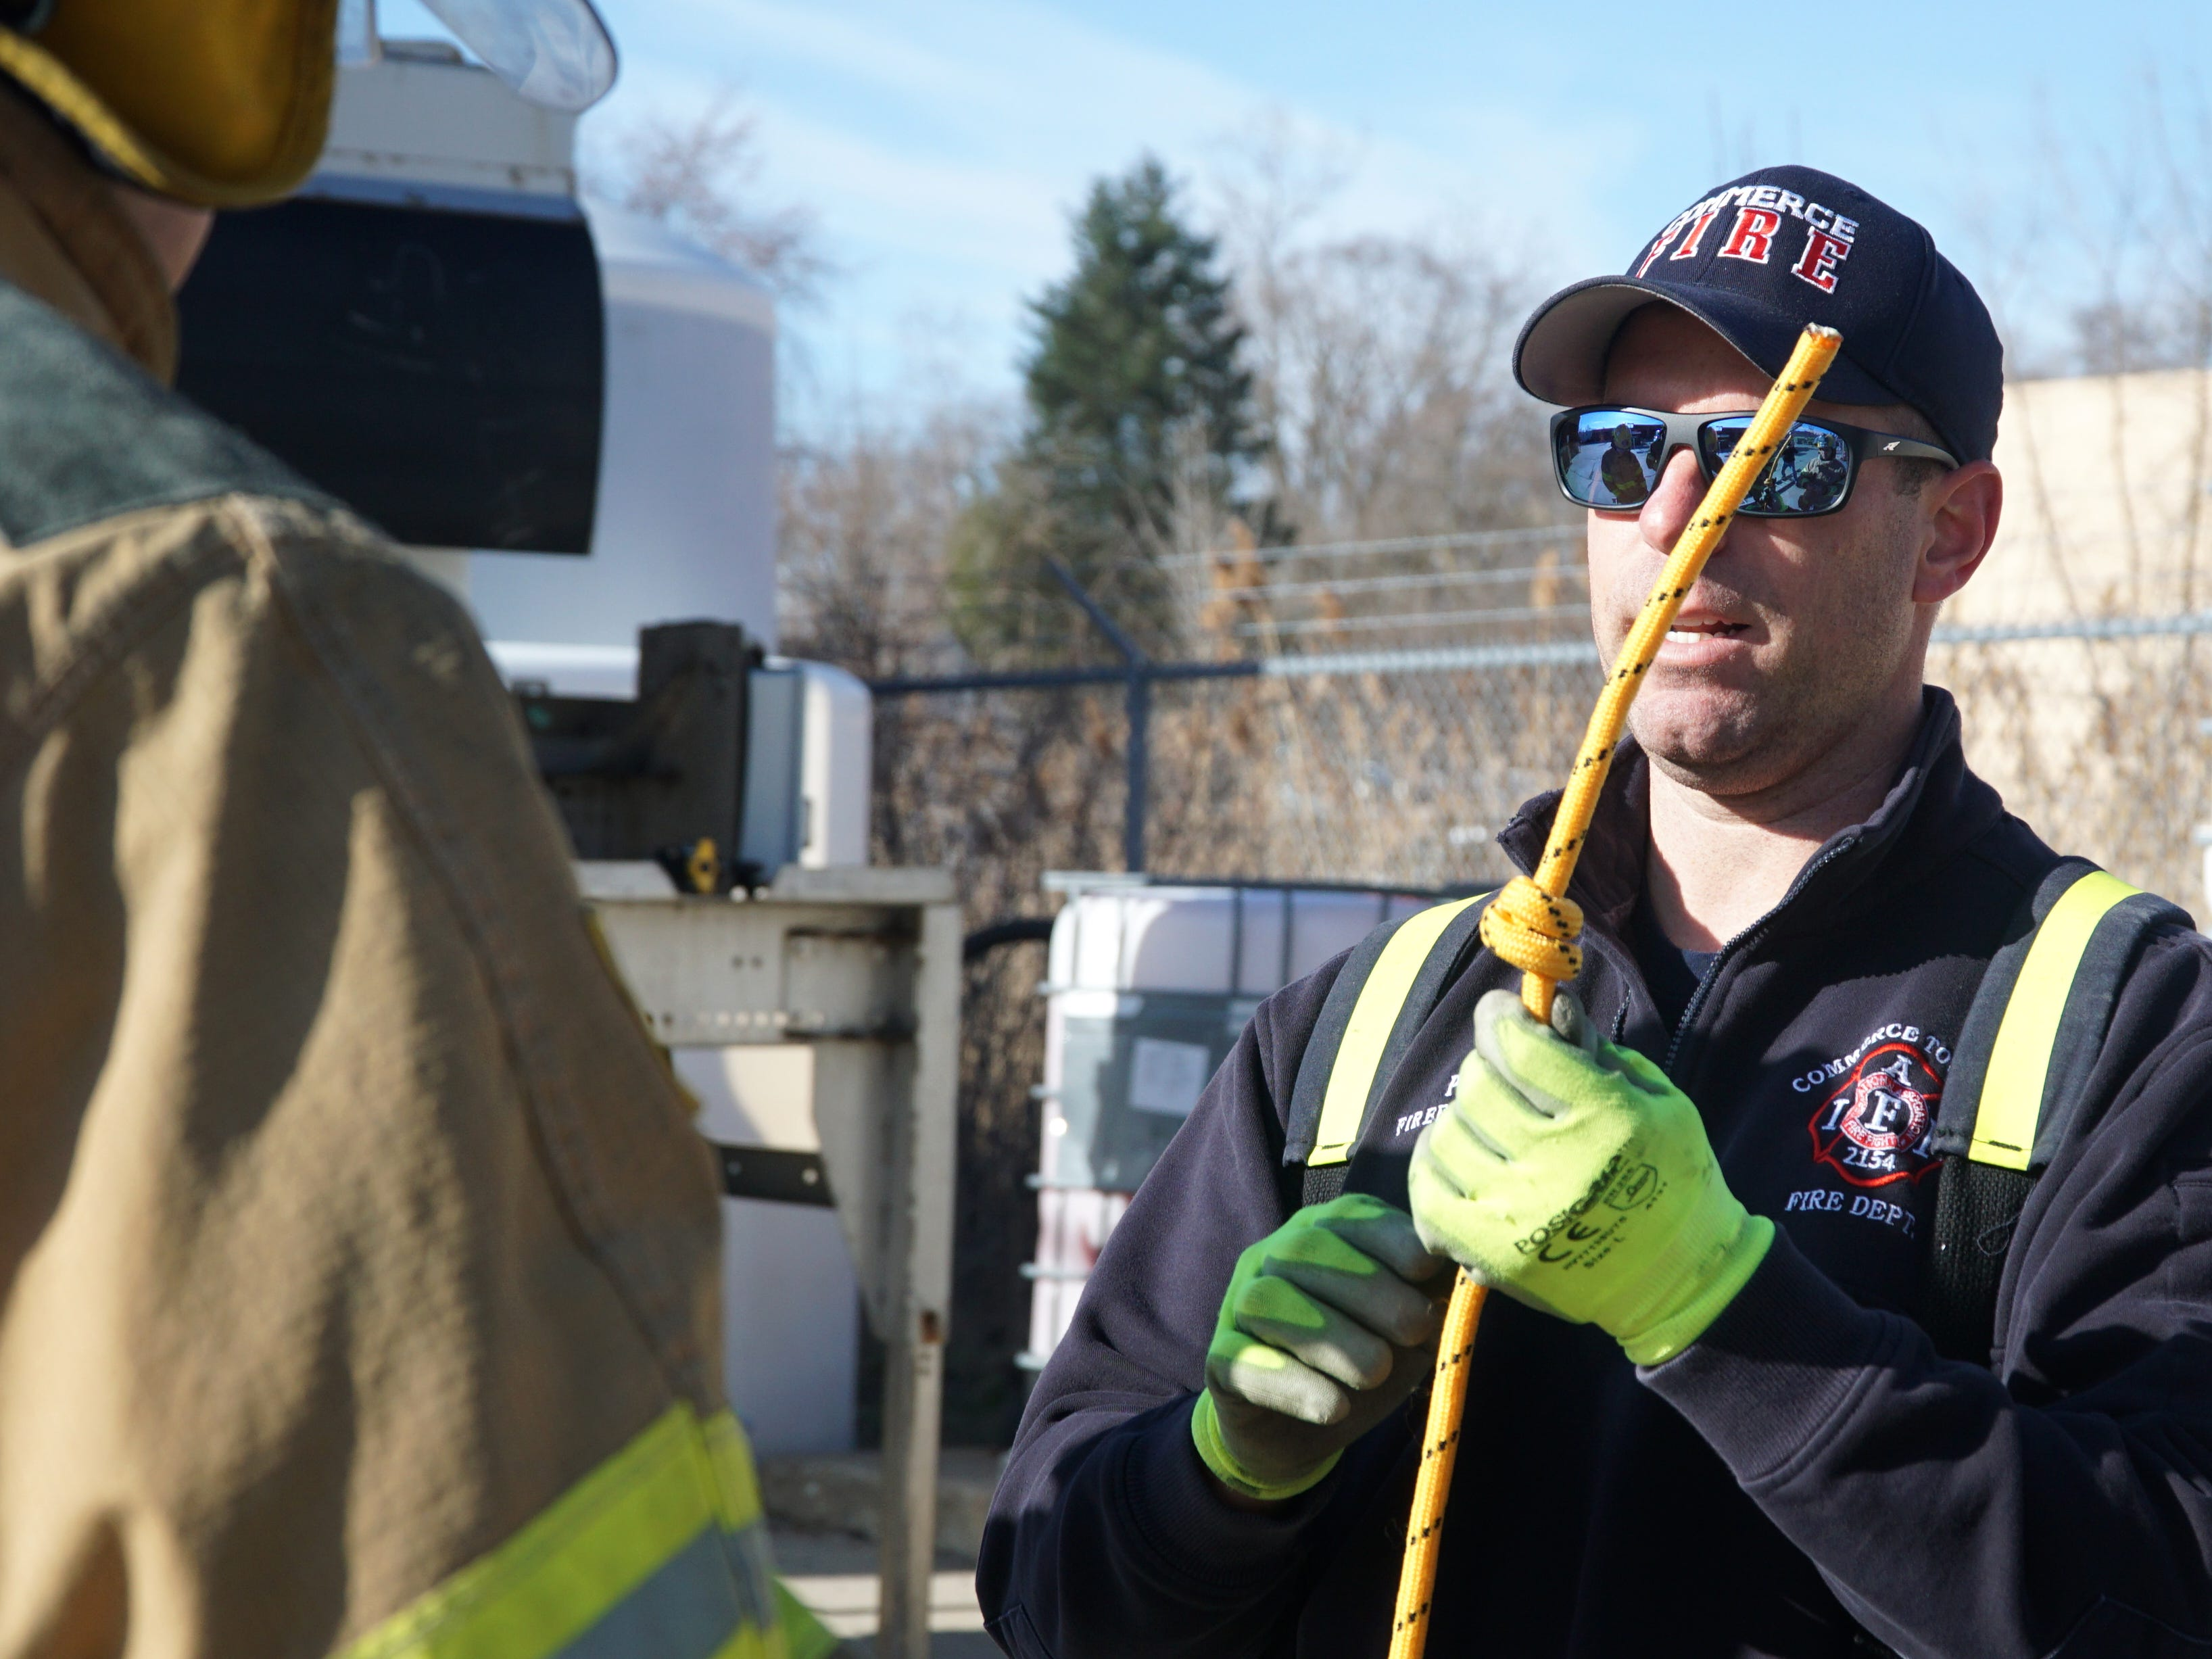 During the training session on April 13 at the Farmington Hills DPW yard Mark Peters - of the Commerce Township Fire Department - was teaching recruits how to tie knots in rope and how to secure their webbing.